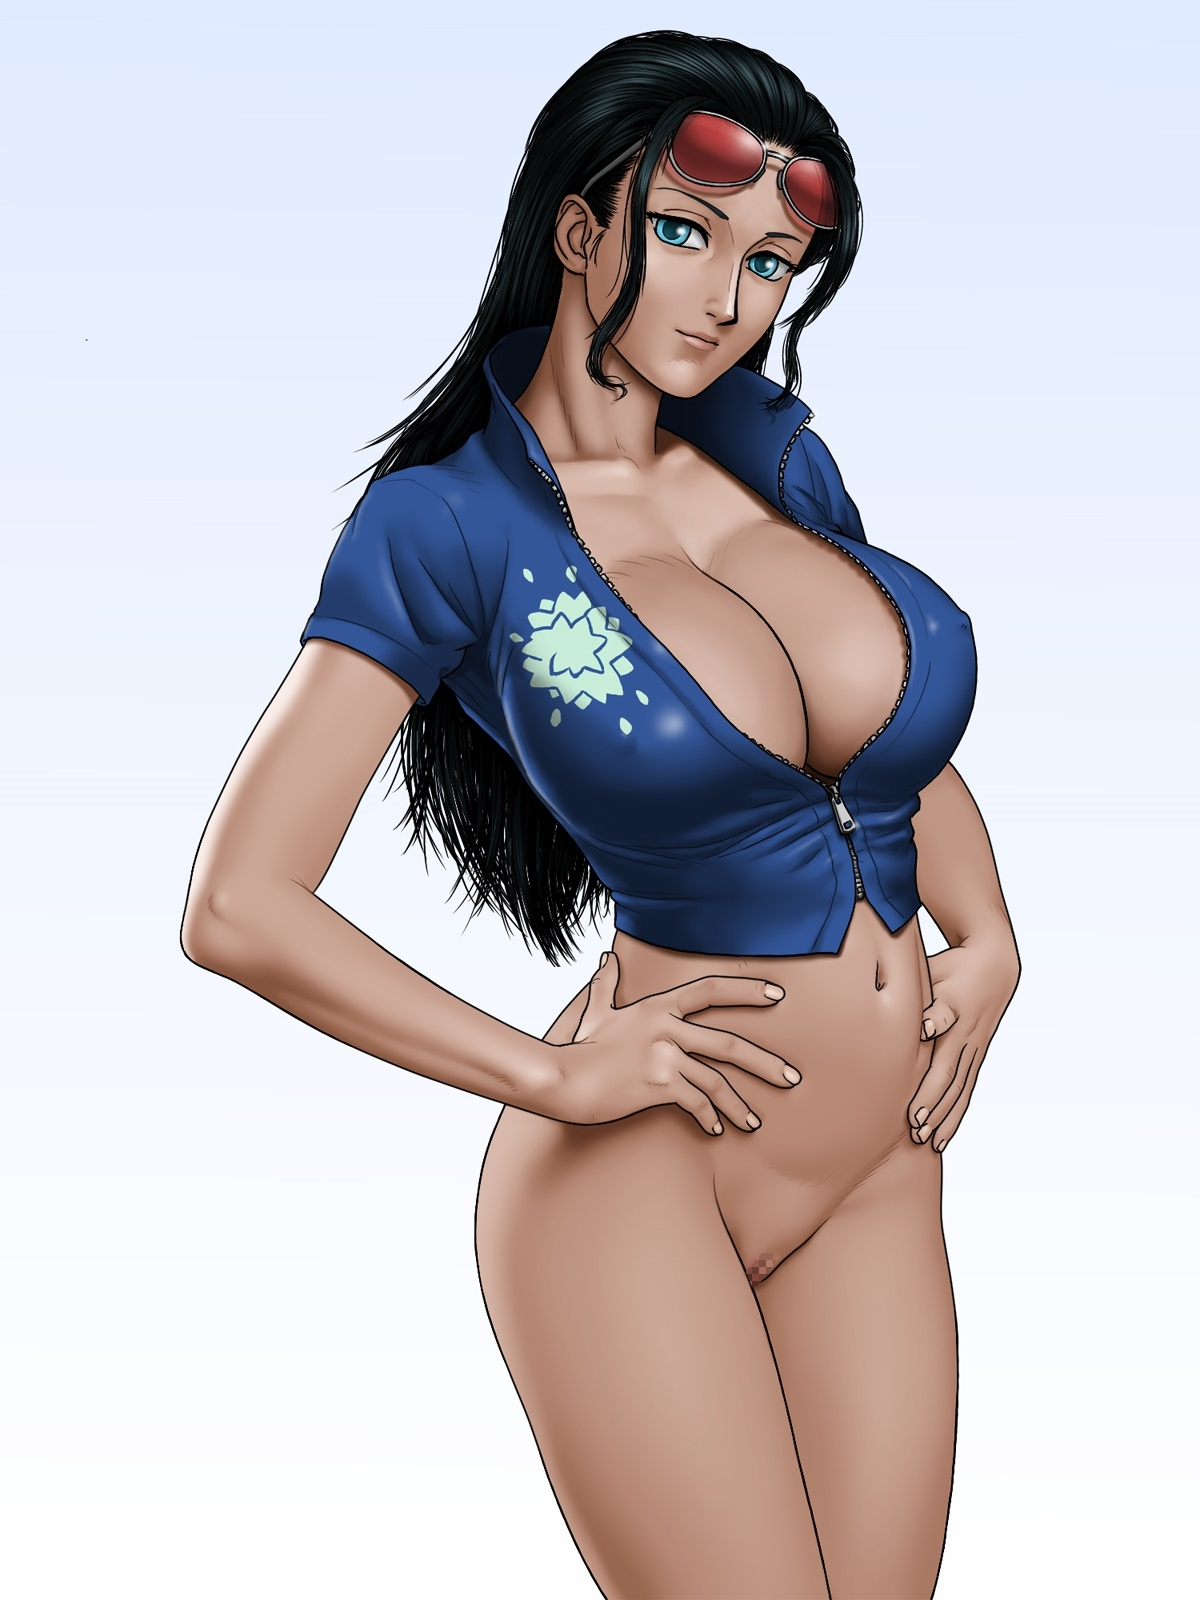 Toon sex pic ##0001301575602 bottomless censored highres karma-laboratory large breasts nico robin no panties one piece standing